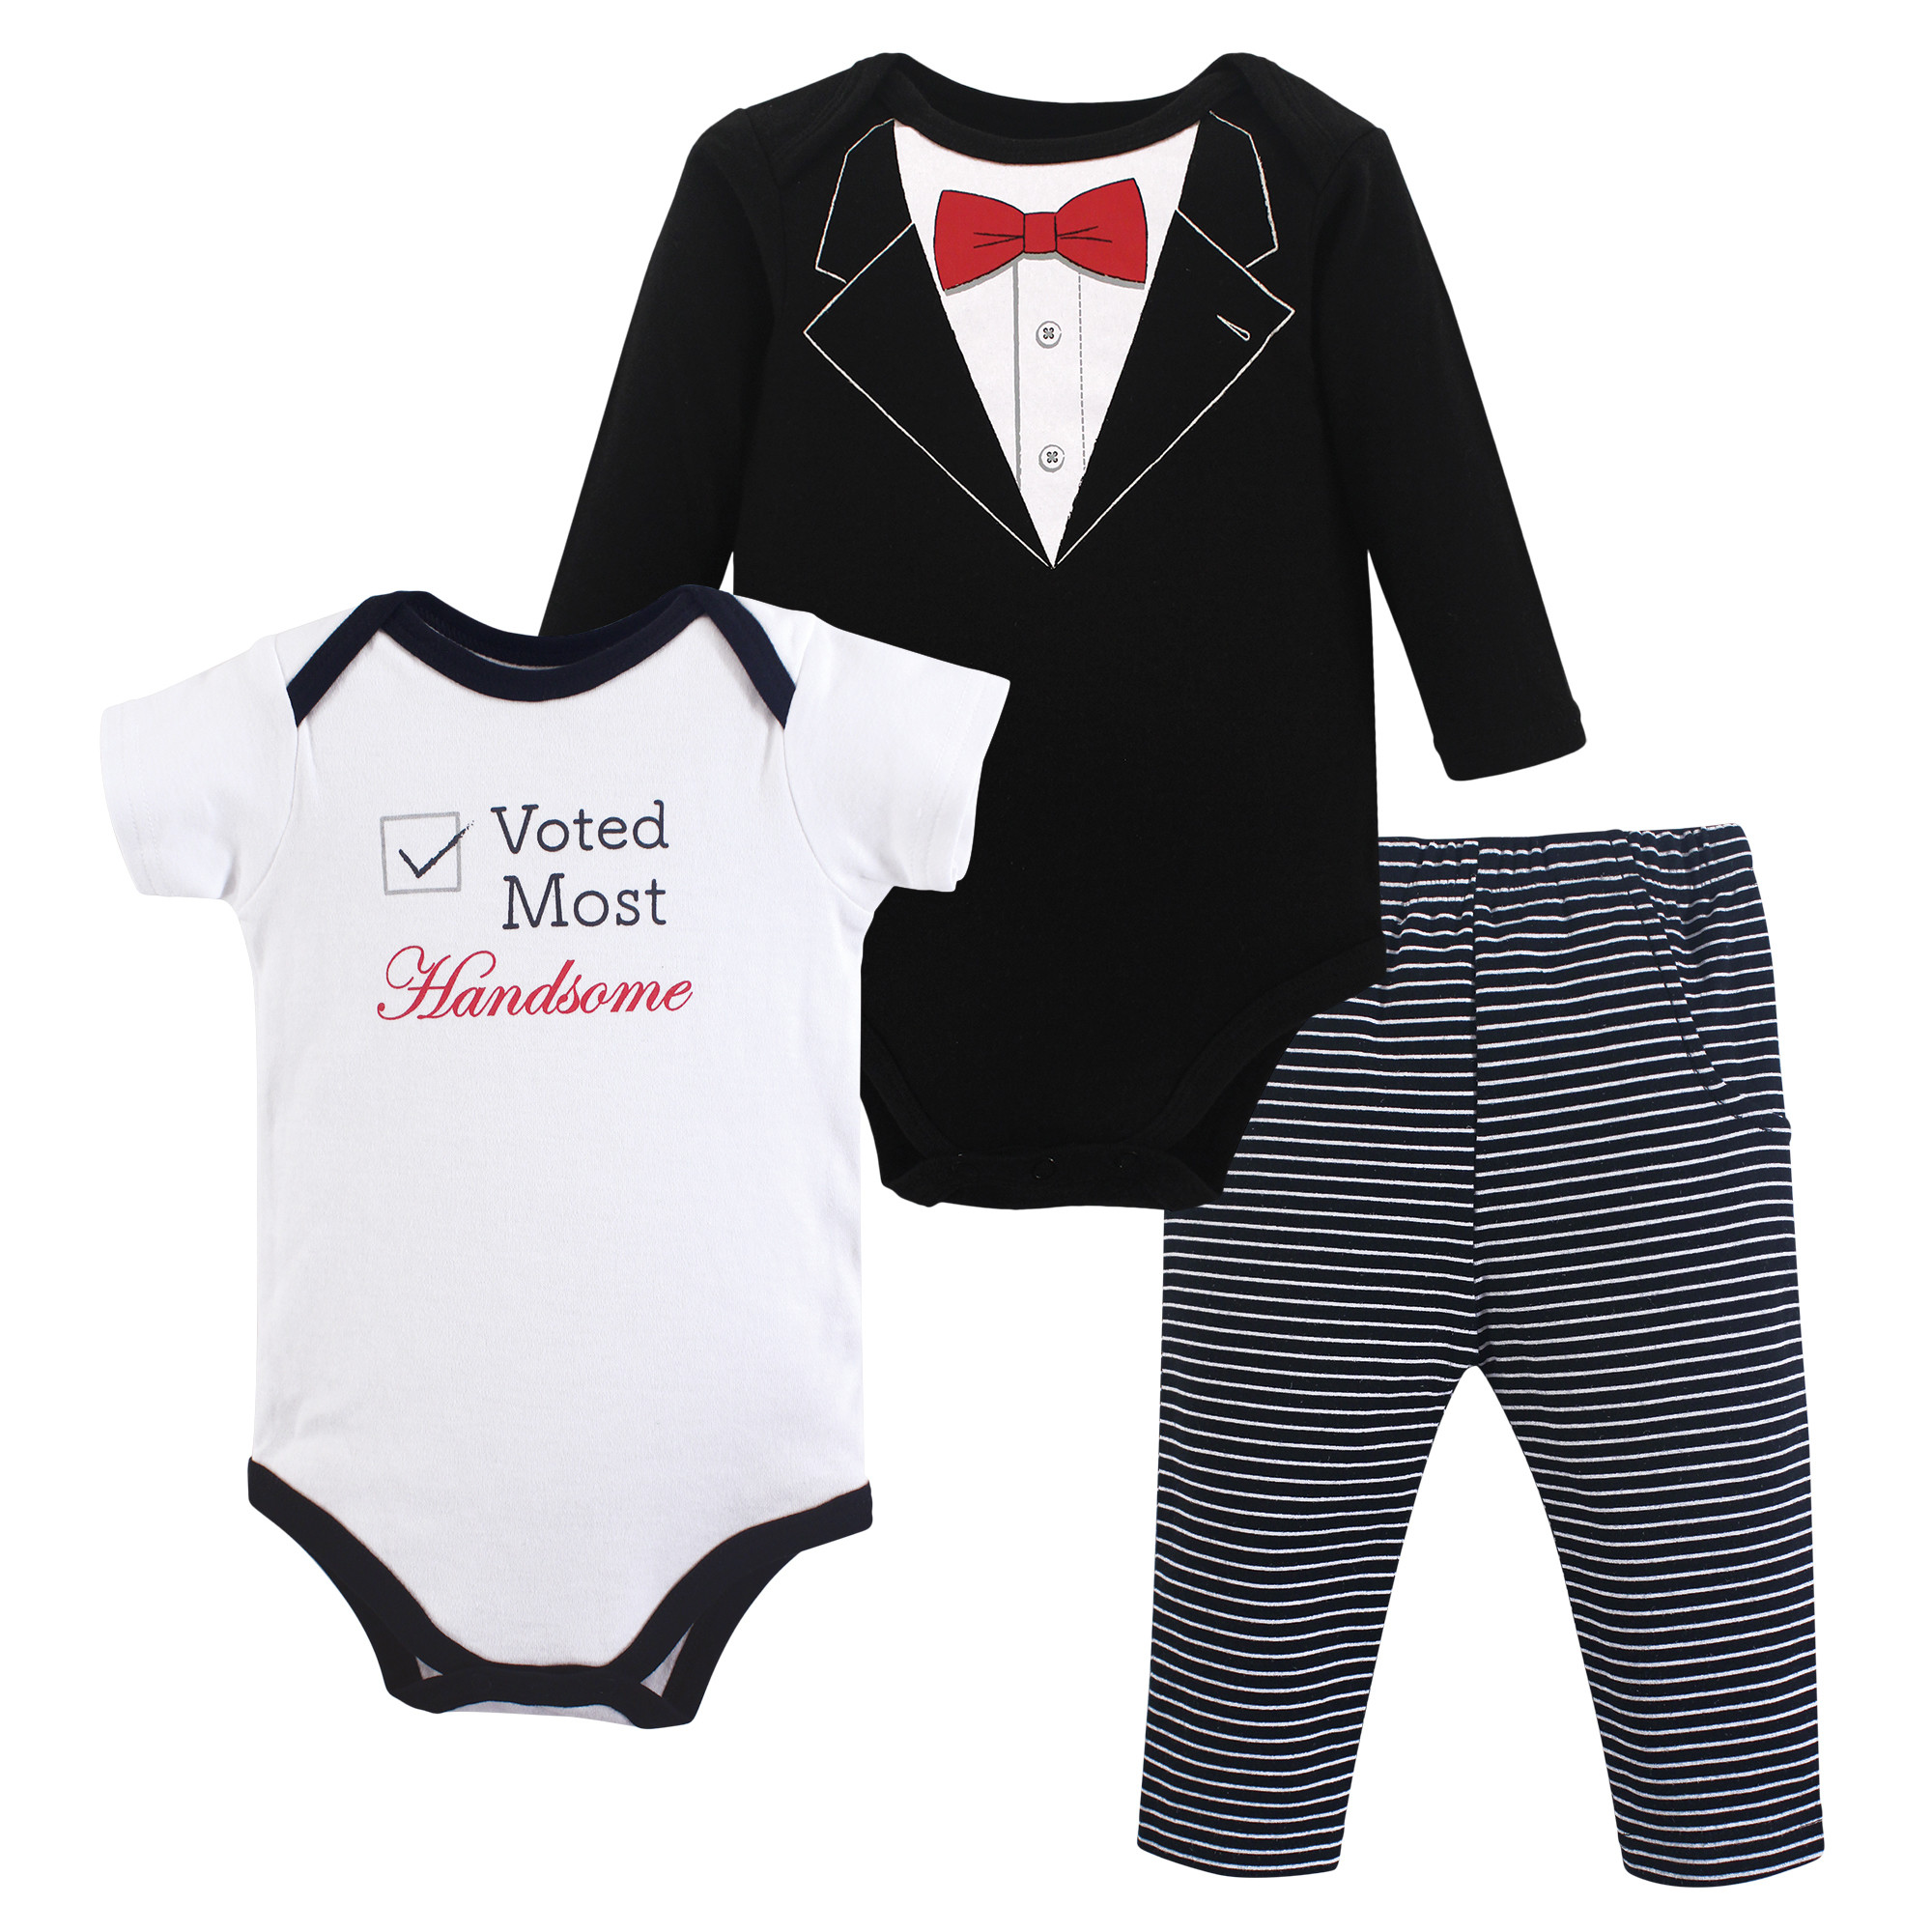 2 Bodysuit and Pant Set 62e754c8c